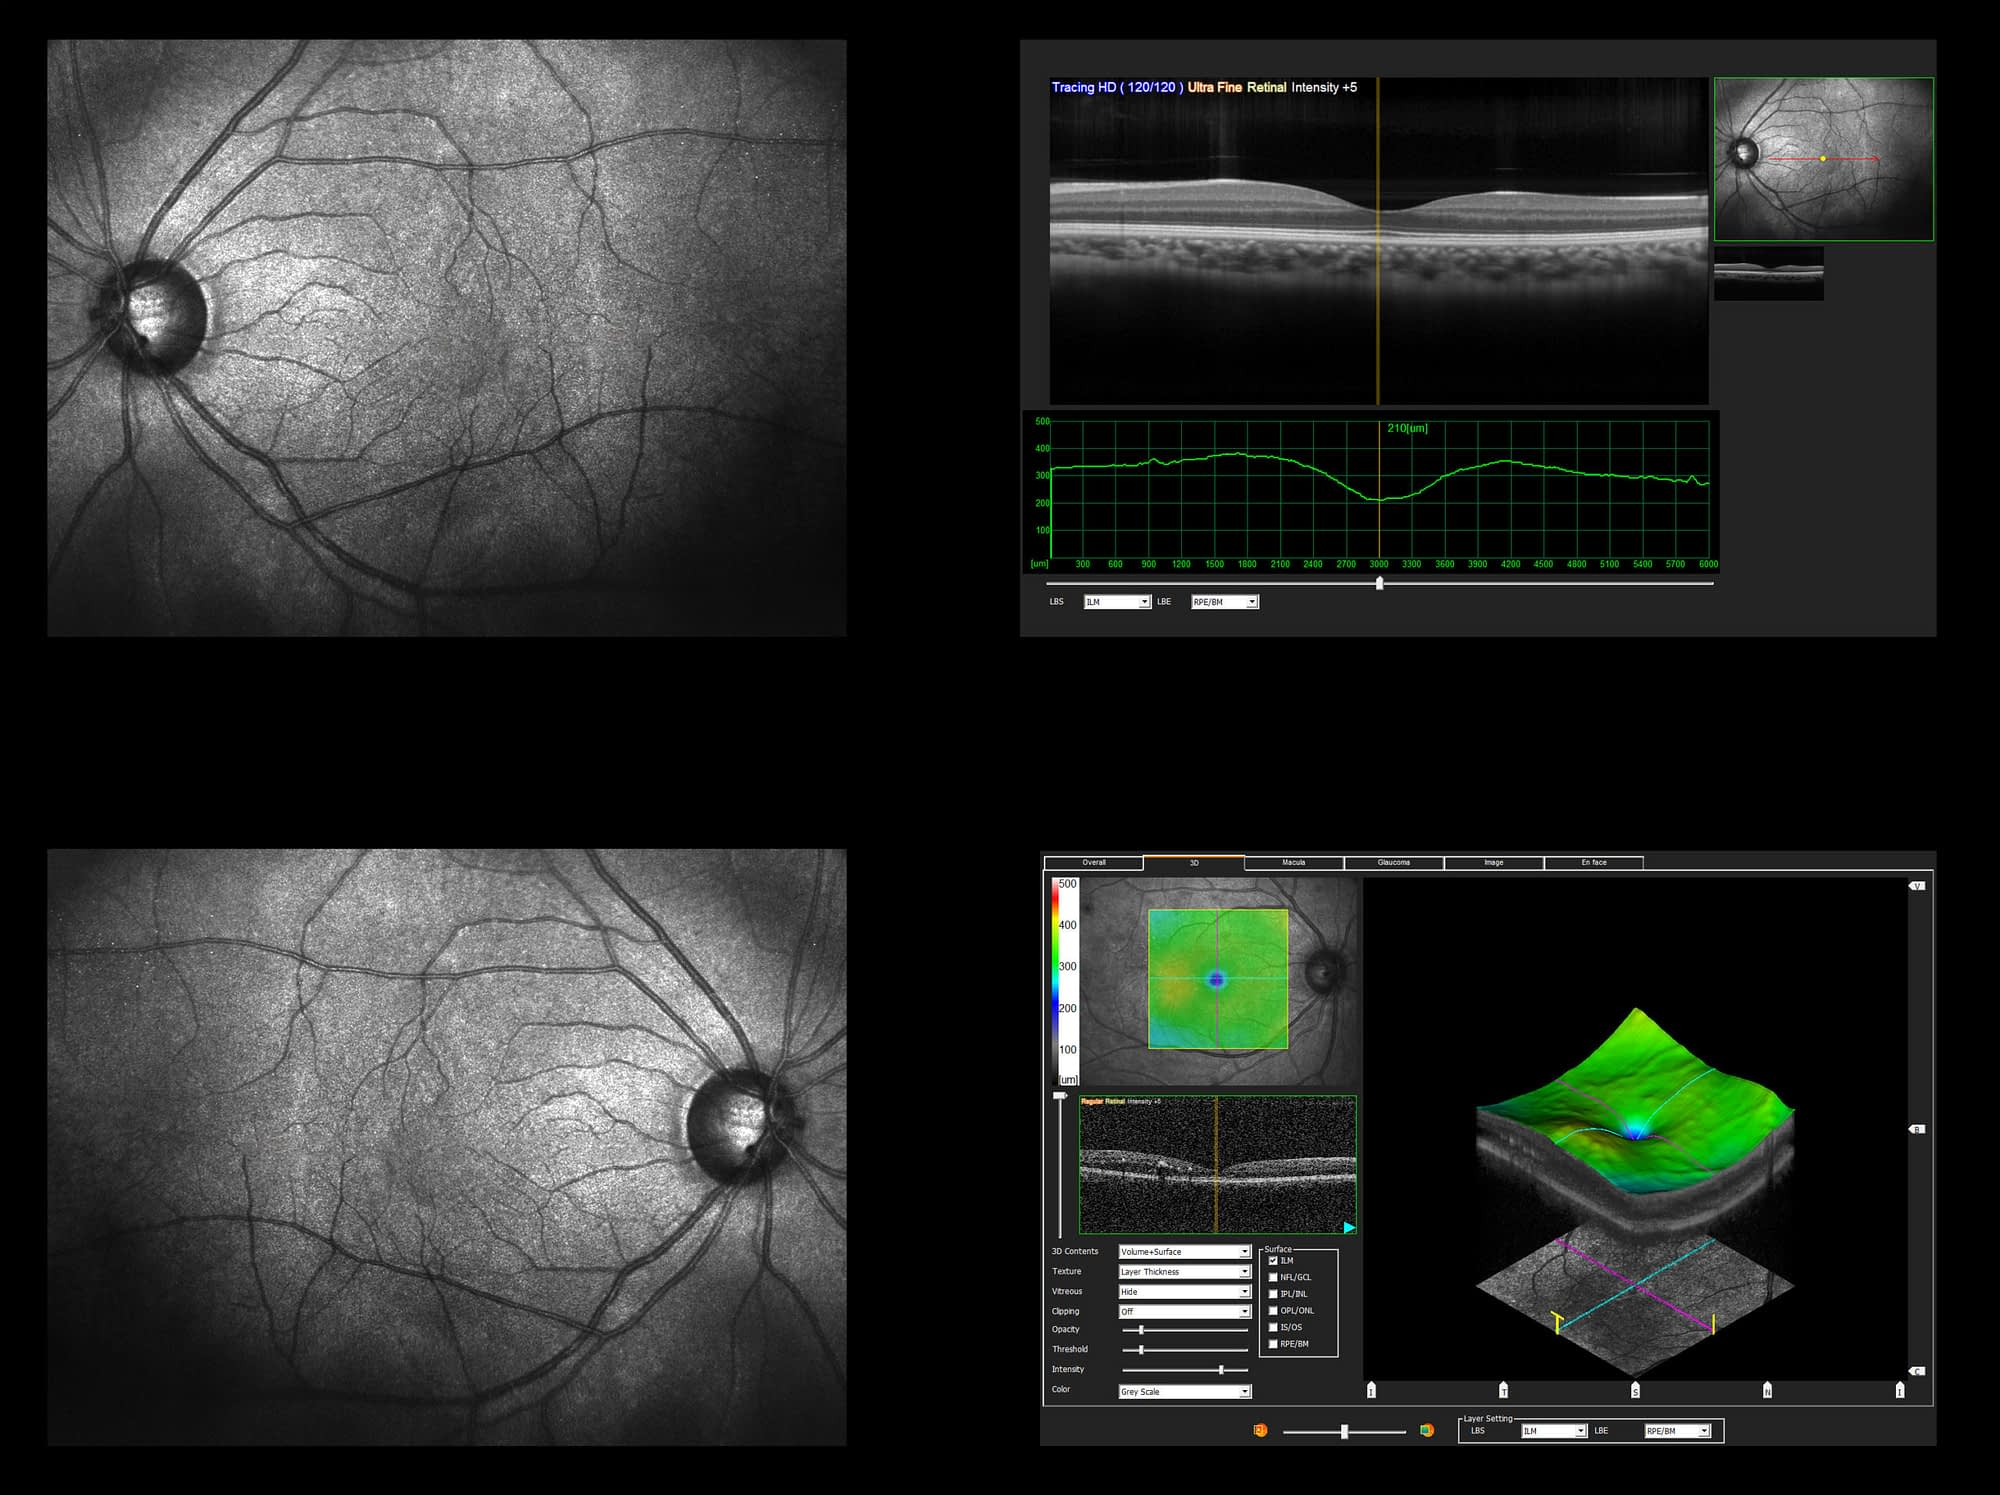 Ophthalmic test – OCT optical coherence tomography measurement. Scan of the macula in retina, layers and thickness of retina.